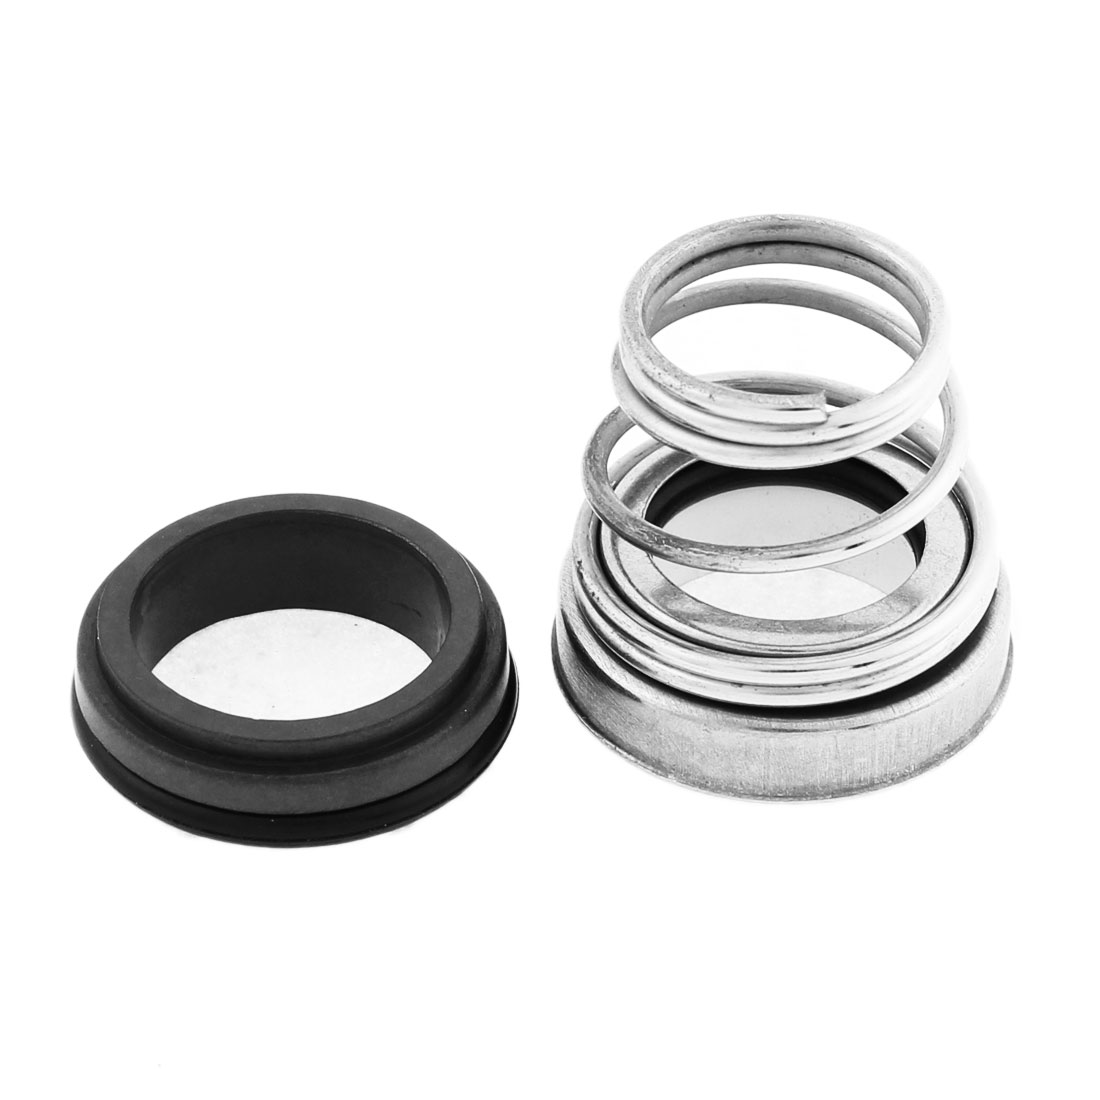 25mm Inner Dia Coiled Spring Water Pump Mechanical Shaft Seal